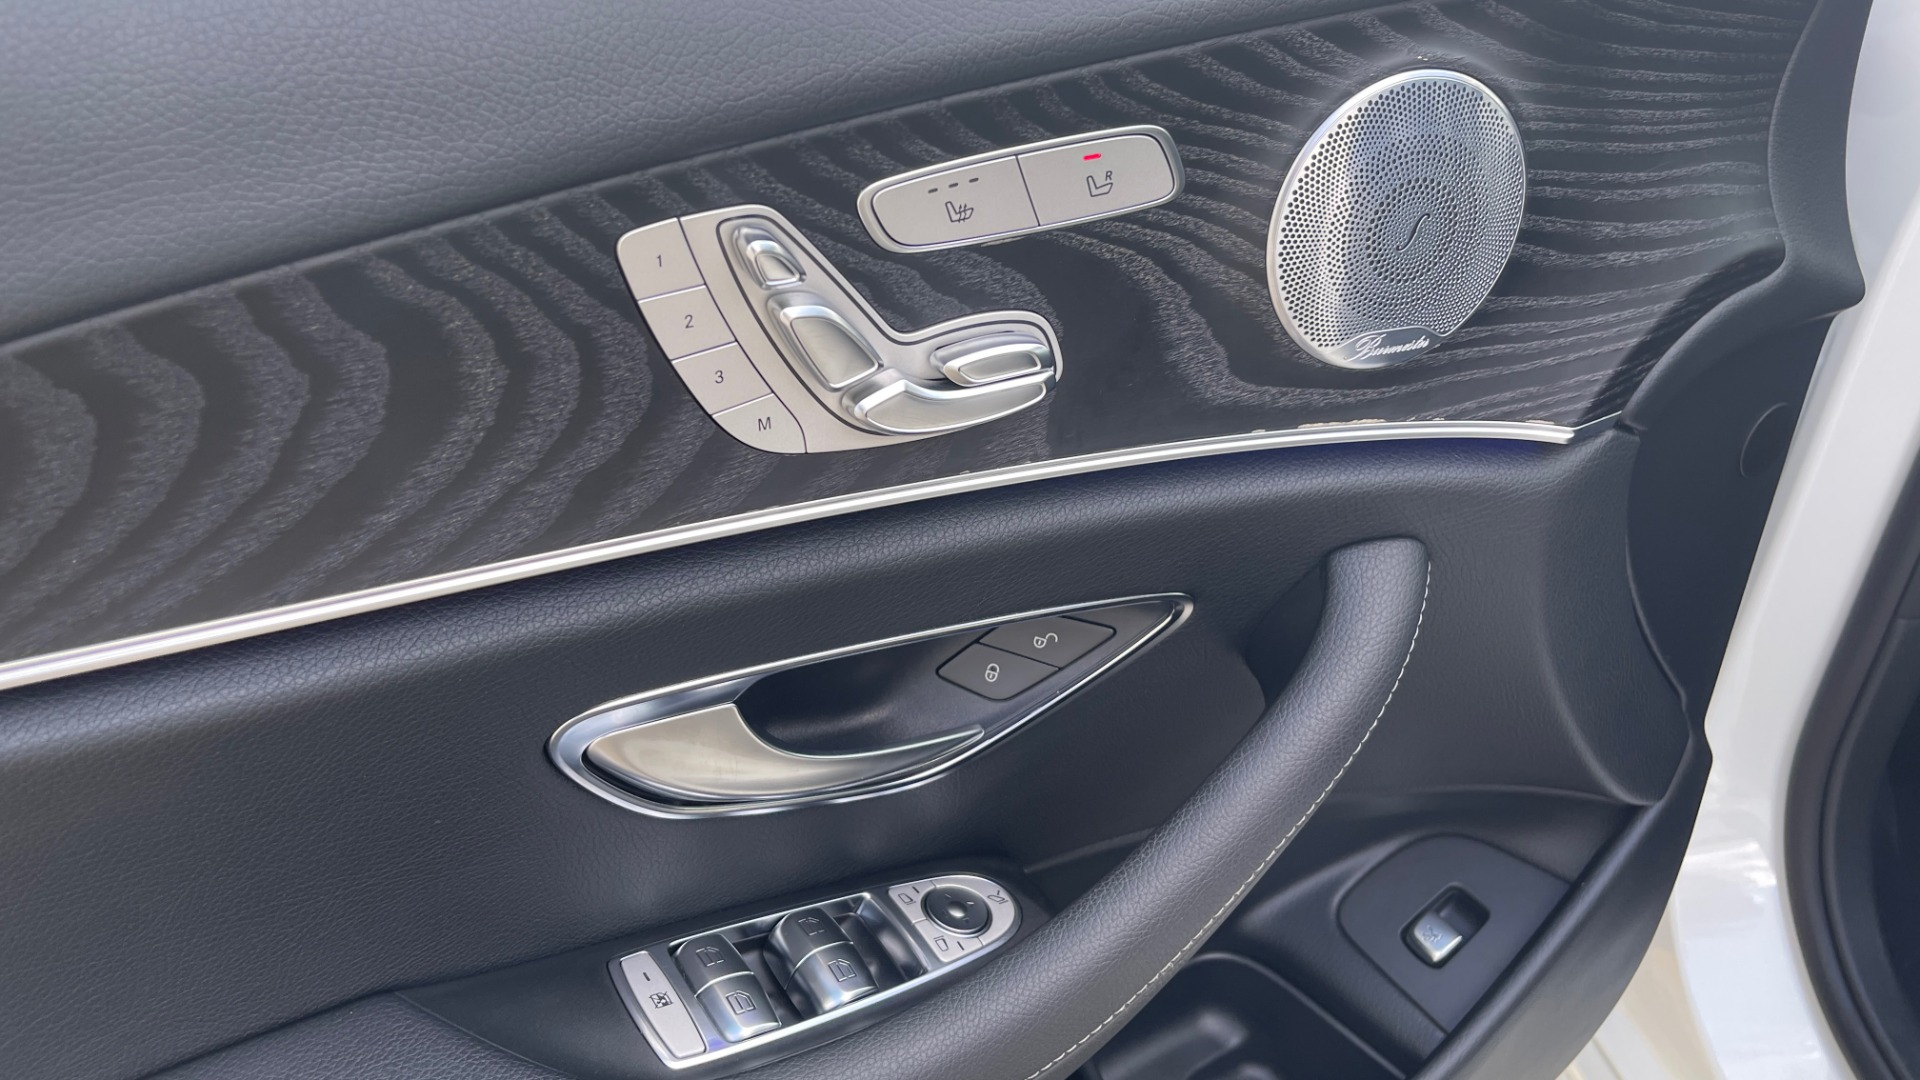 Used 2018 Mercedes-Benz E-CLASS E 300 PREMIUM / NIGHT PKG / PANO-ROOF / BURMESTER / REARVIEW for sale $42,399 at Formula Imports in Charlotte NC 28227 33